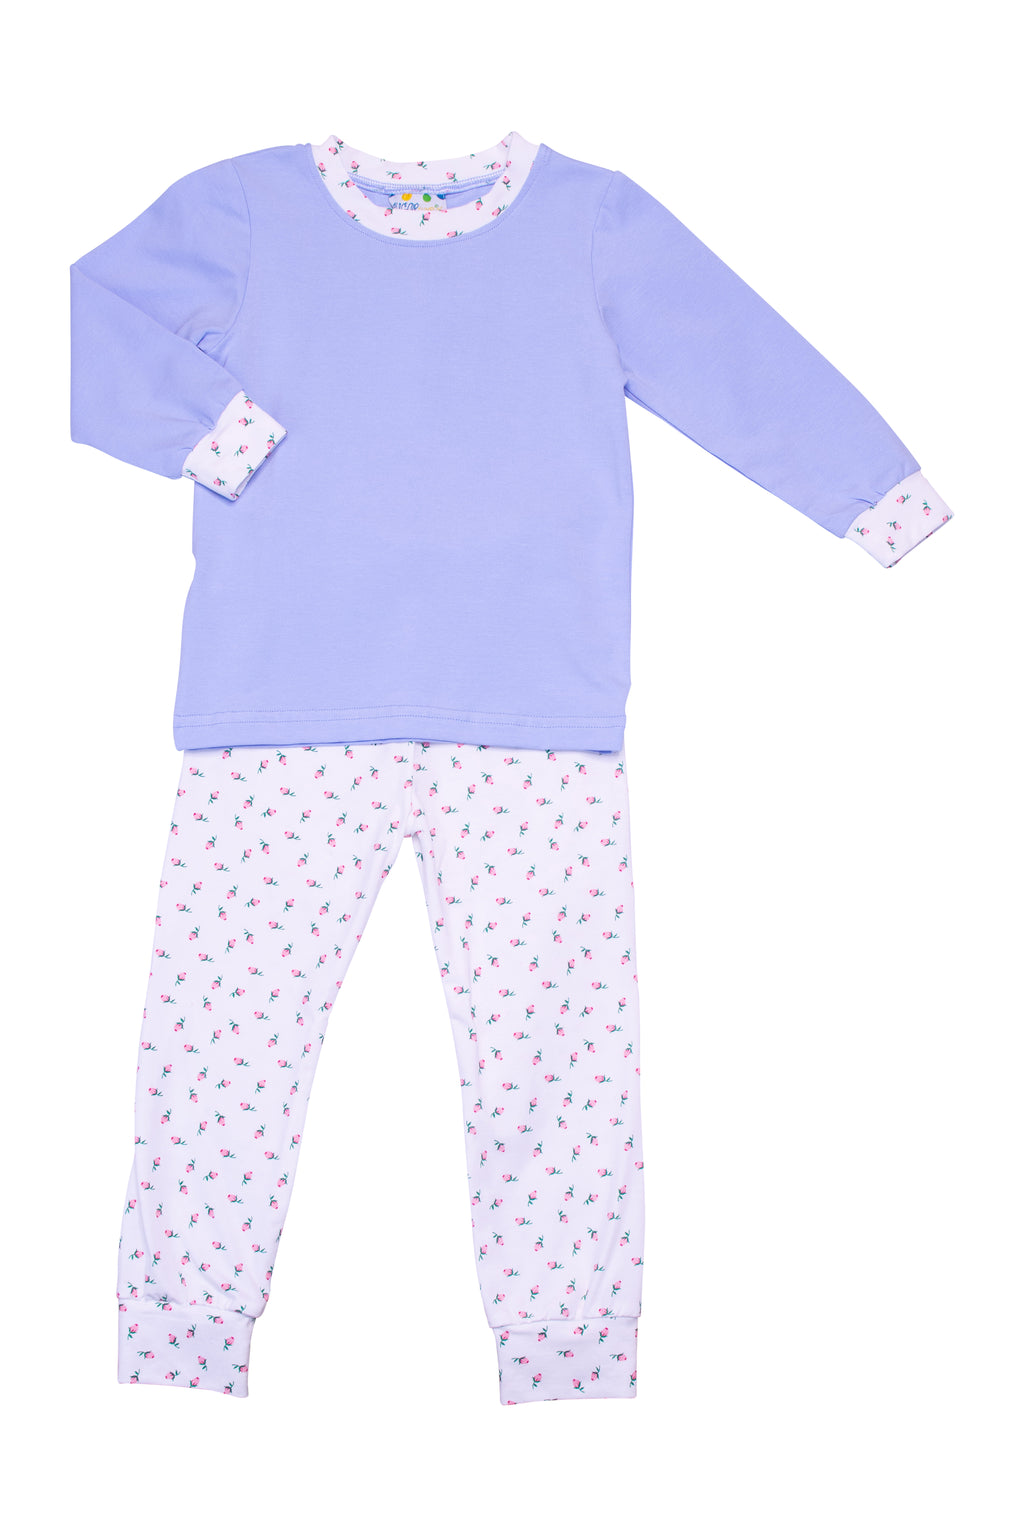 Girls Knit Blue/Floral PJ